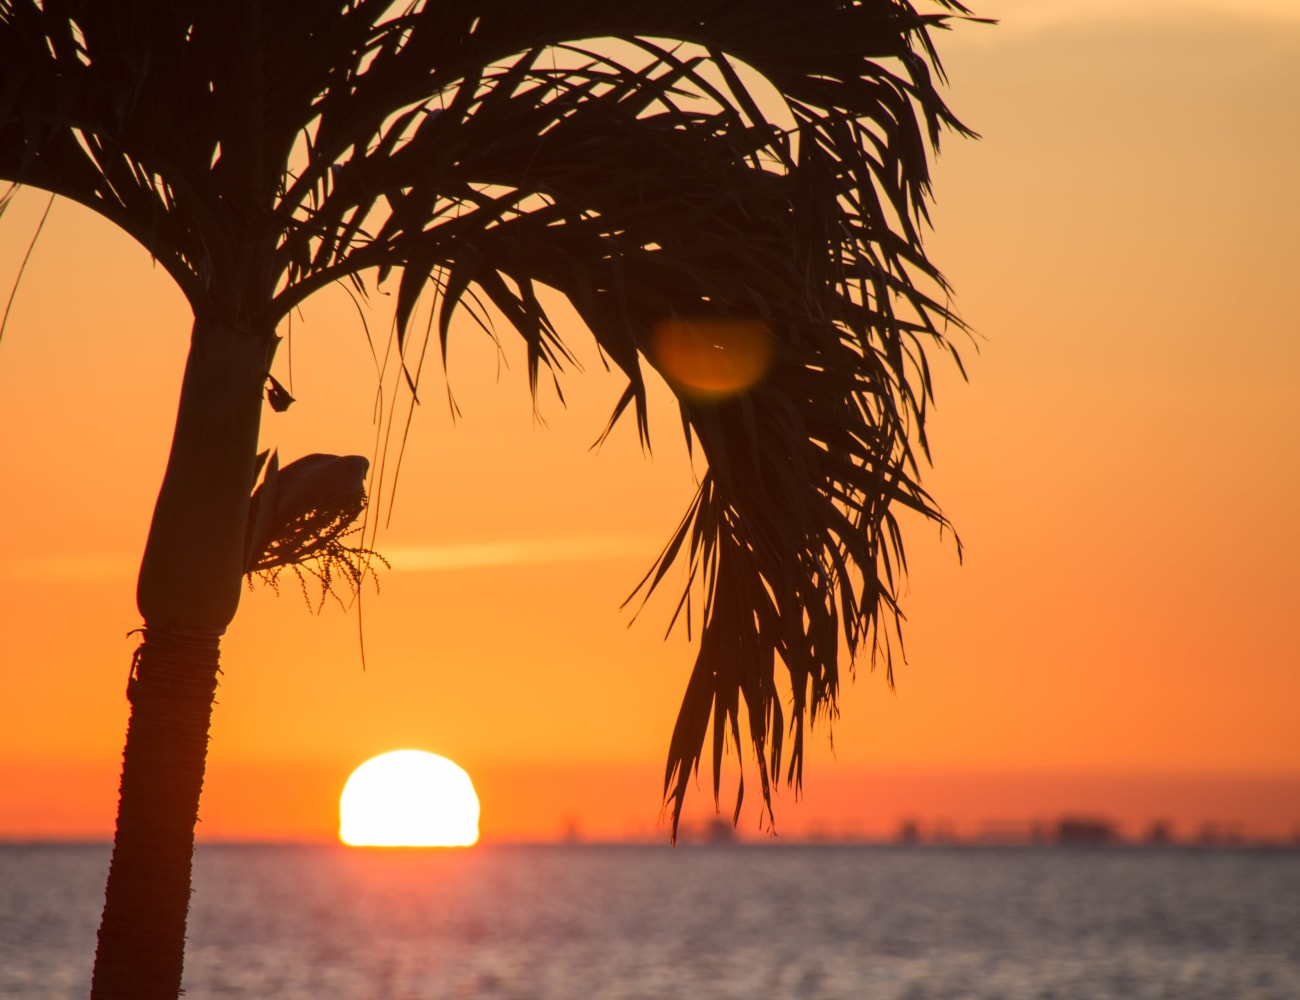 A beautiful palm tree at sunset near The Braxton in Palm Bay, Florida